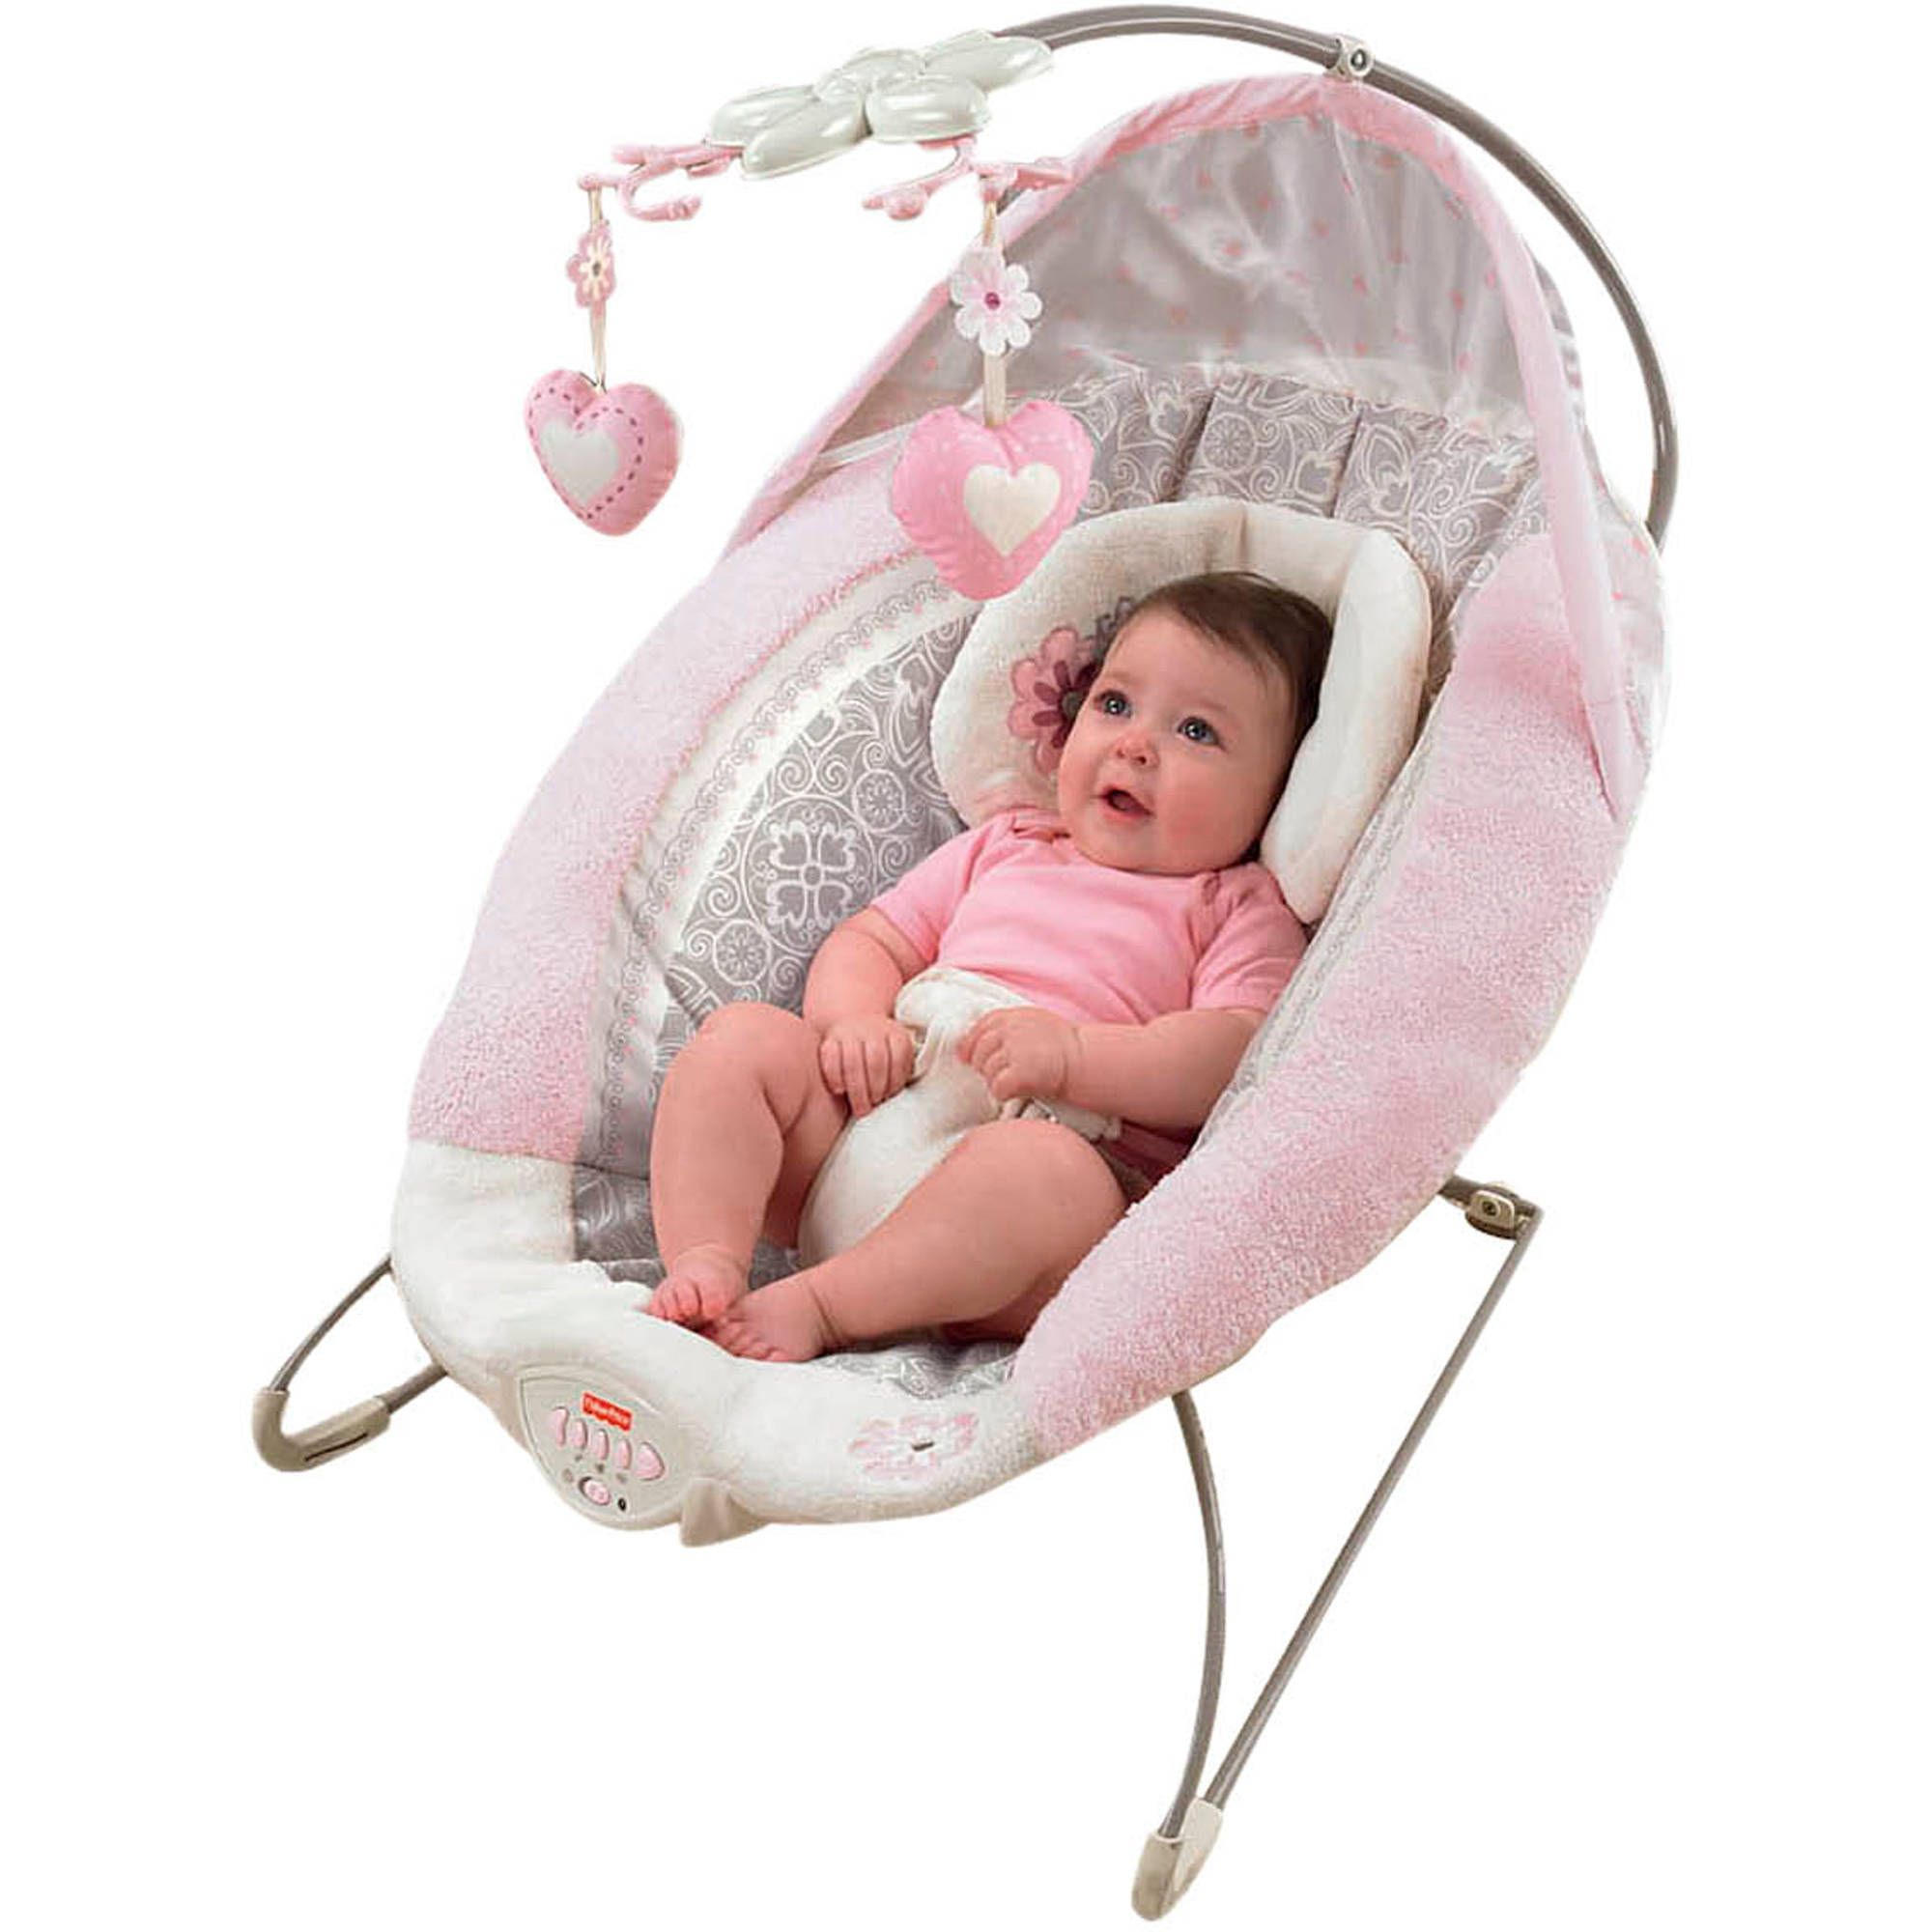 Search And Compare More Baby Care Products At Http Extrabigfoot Com Products Query Baby 20products Baby Bouncer Best Baby Bouncer Fisher Price Baby